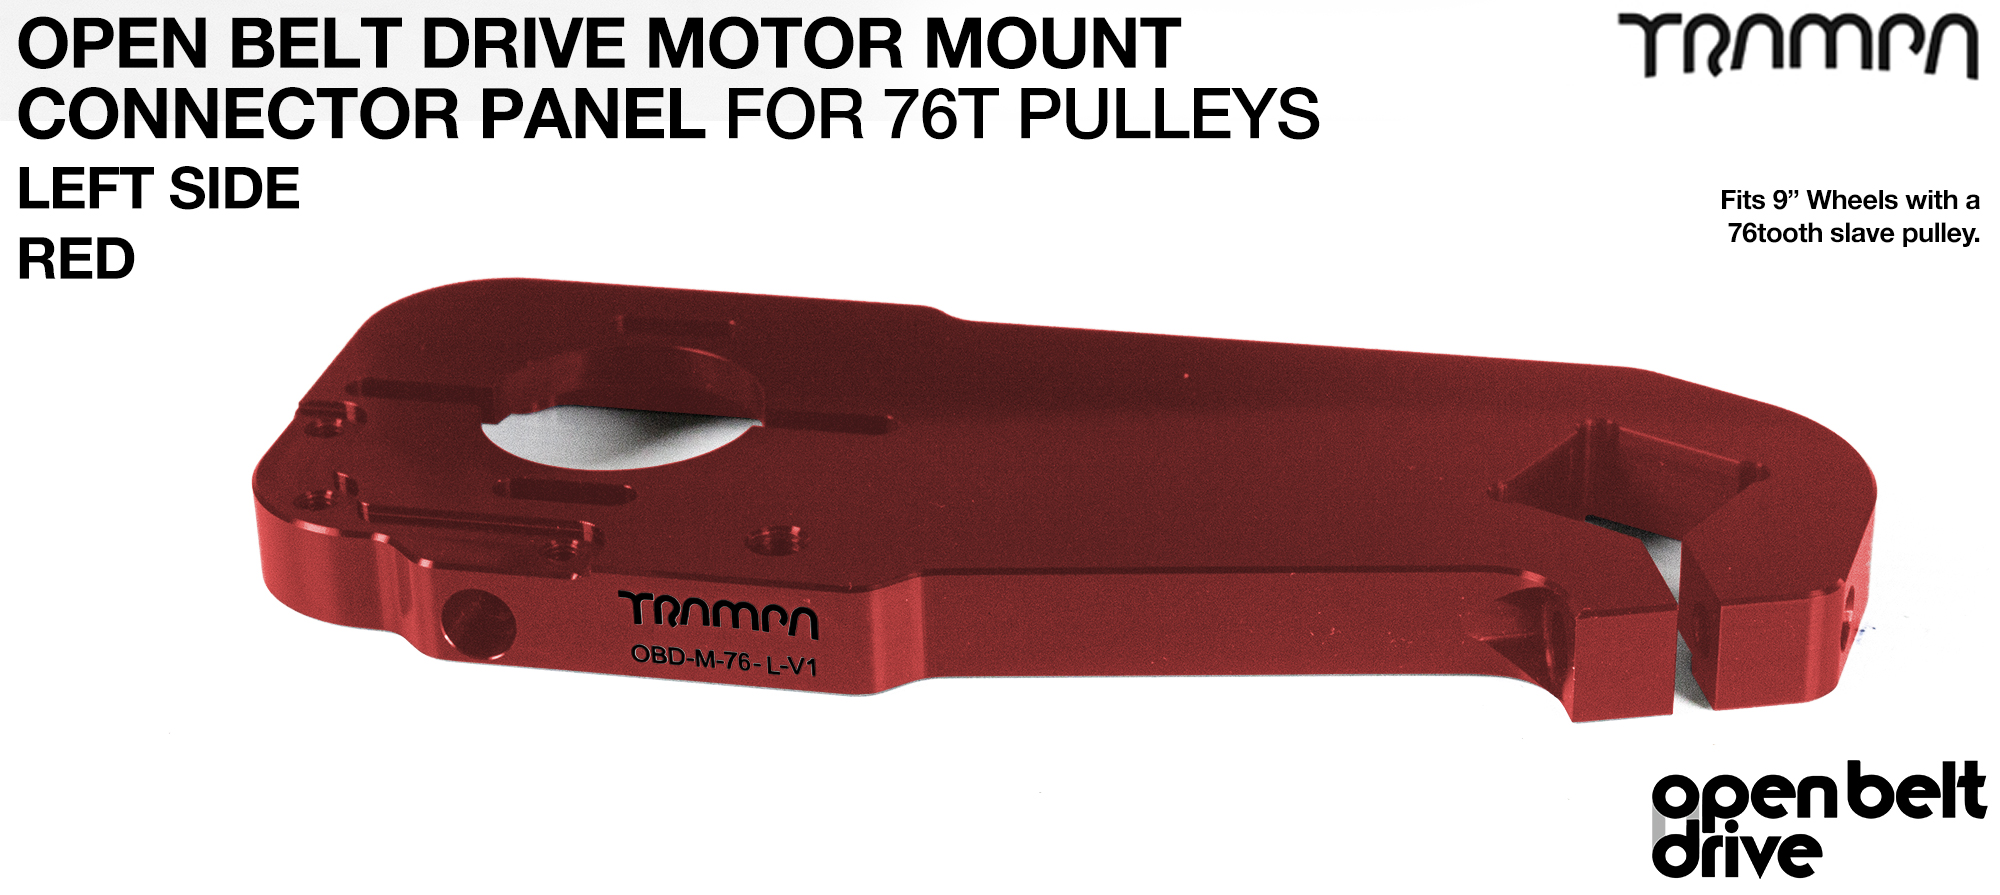 OBD Motor Mount Connector Panel for 76 tooth pulleys - REGULAR - RED